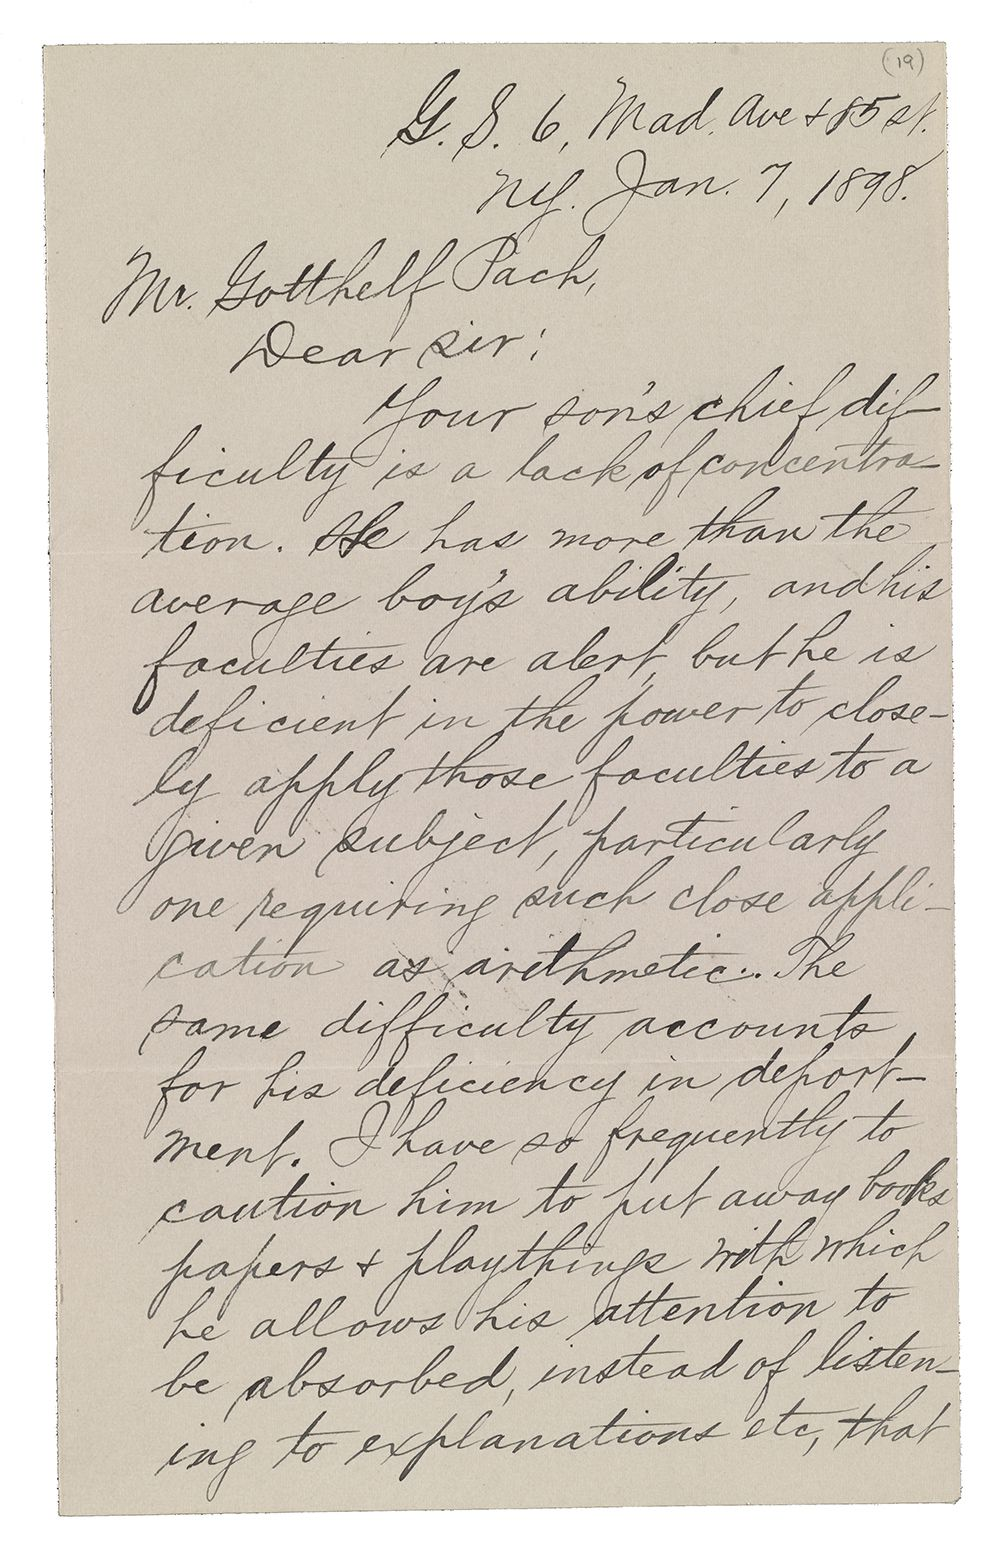 1898 letter to Gotthelf Pach from Magnus Gross regarding the progress of his son, Walter.